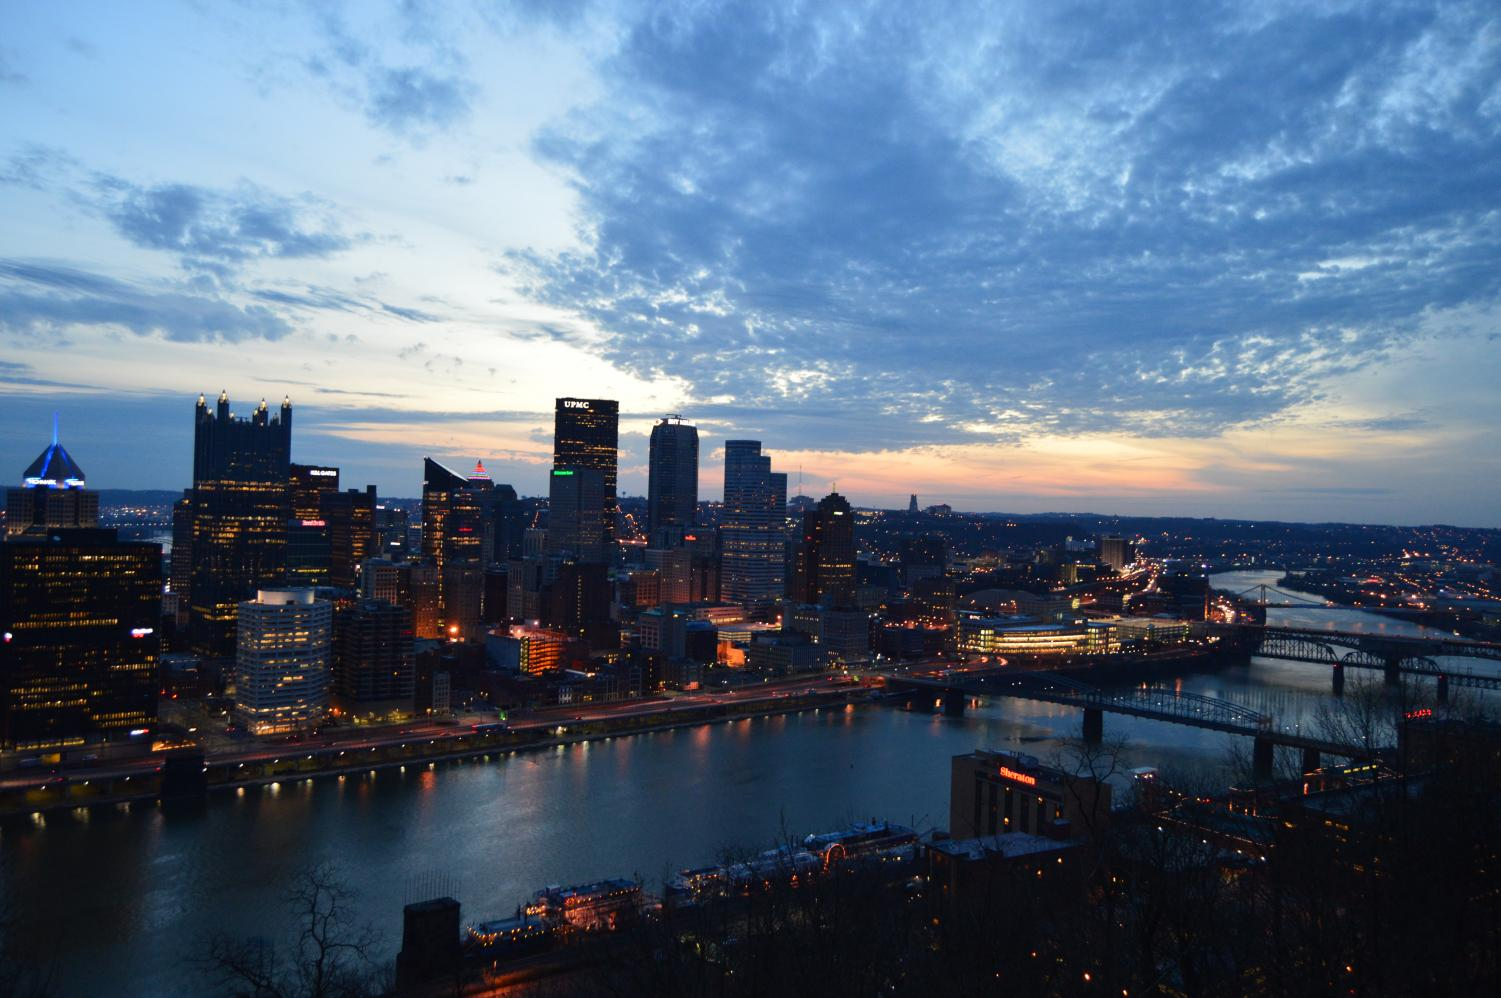 Sunrise from Mt. Washington in Pittsburgh on April 13, 2018.